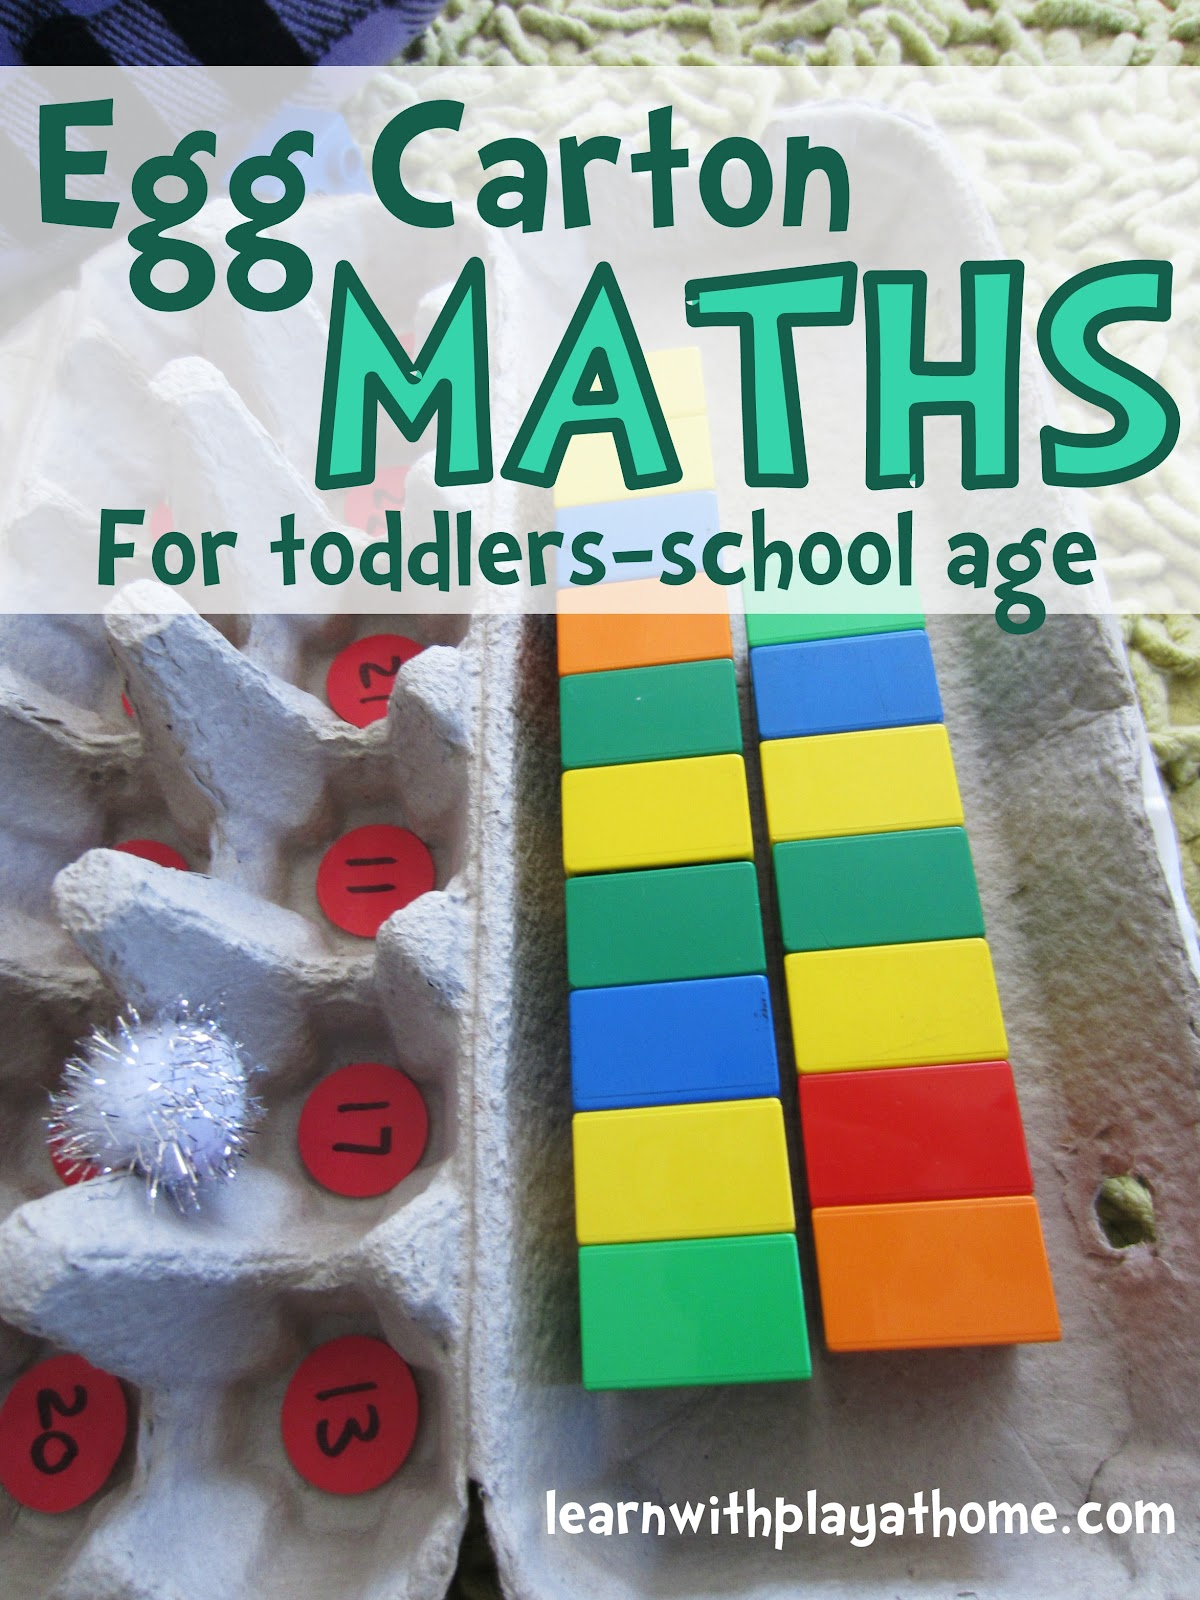 Learn with Play at Home Egg Carton Maths Toddlers to School Age